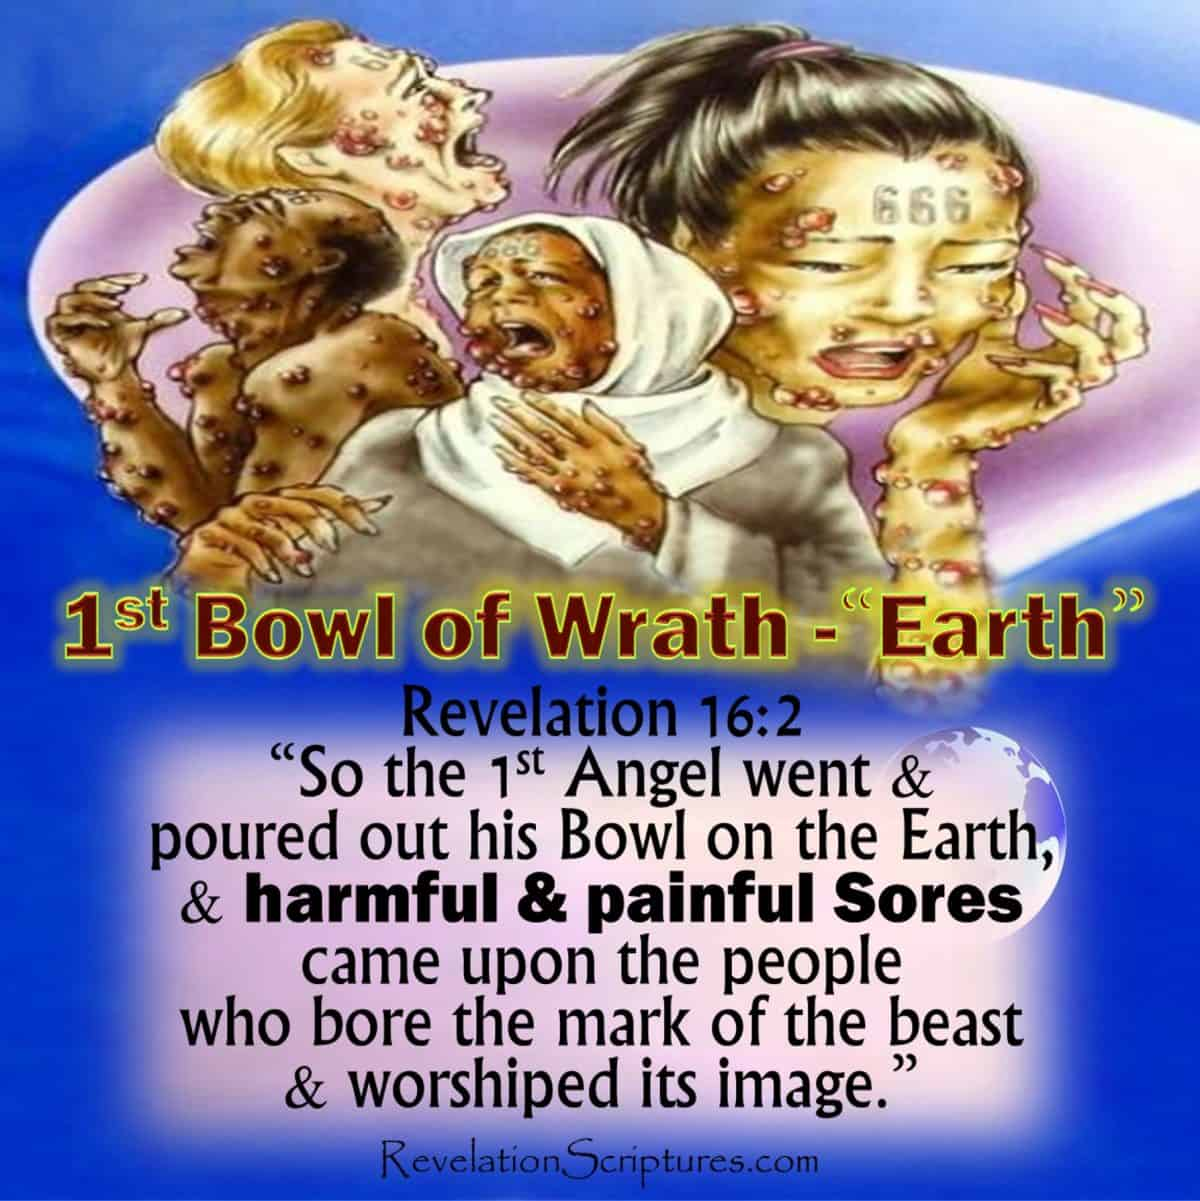 1st Bowl of Wrath,1st Bowl,1st Vial of Wrath,1st Vial,Land,Earth,Sores,painful,harmful,festering,malignant,mark of beast,worship image,image of the beast,666,10 plagues of Egypt,6th Plague of Egypt,Boils,7 Angles,7 last Plagues,7 Final Plagues,Curses,7 Golden Bowls,Day of Wrath,Day of Vengeance,Anger,7 Vials of Wrath,7 Bowls of Wrath,Book of Revelation,Revelation 15,Revelation 16,Revelation Chapter 15,Revelation Chapter 16,Seven Vials of Wrath,7 Vials,7 Bowls,Seven Bowls,wrath,Picture Gallery,Book of Revelation,